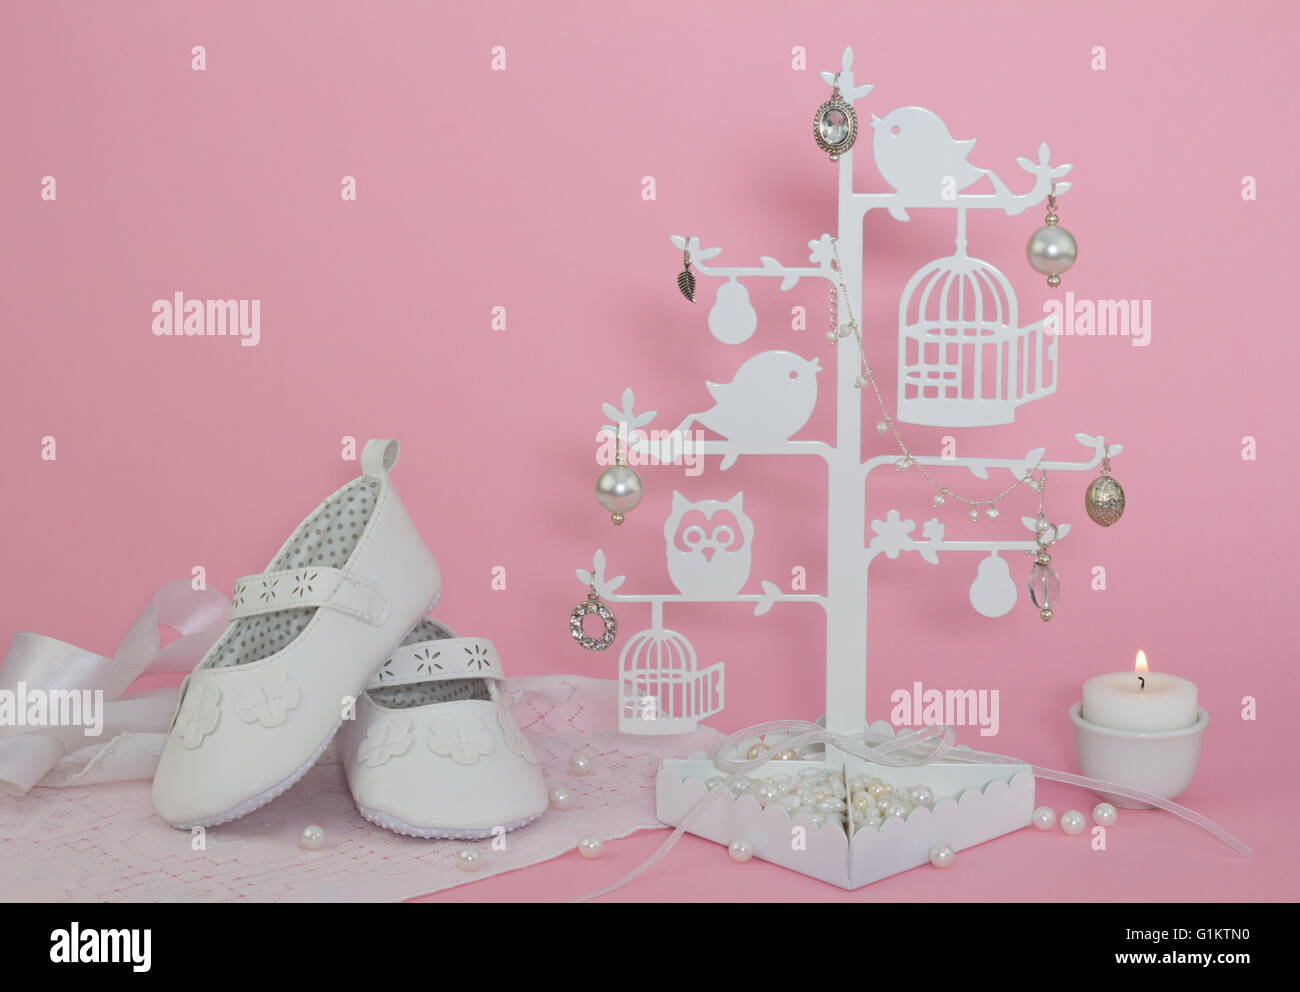 baby girl shoes candle and pearls pink invitation background stock